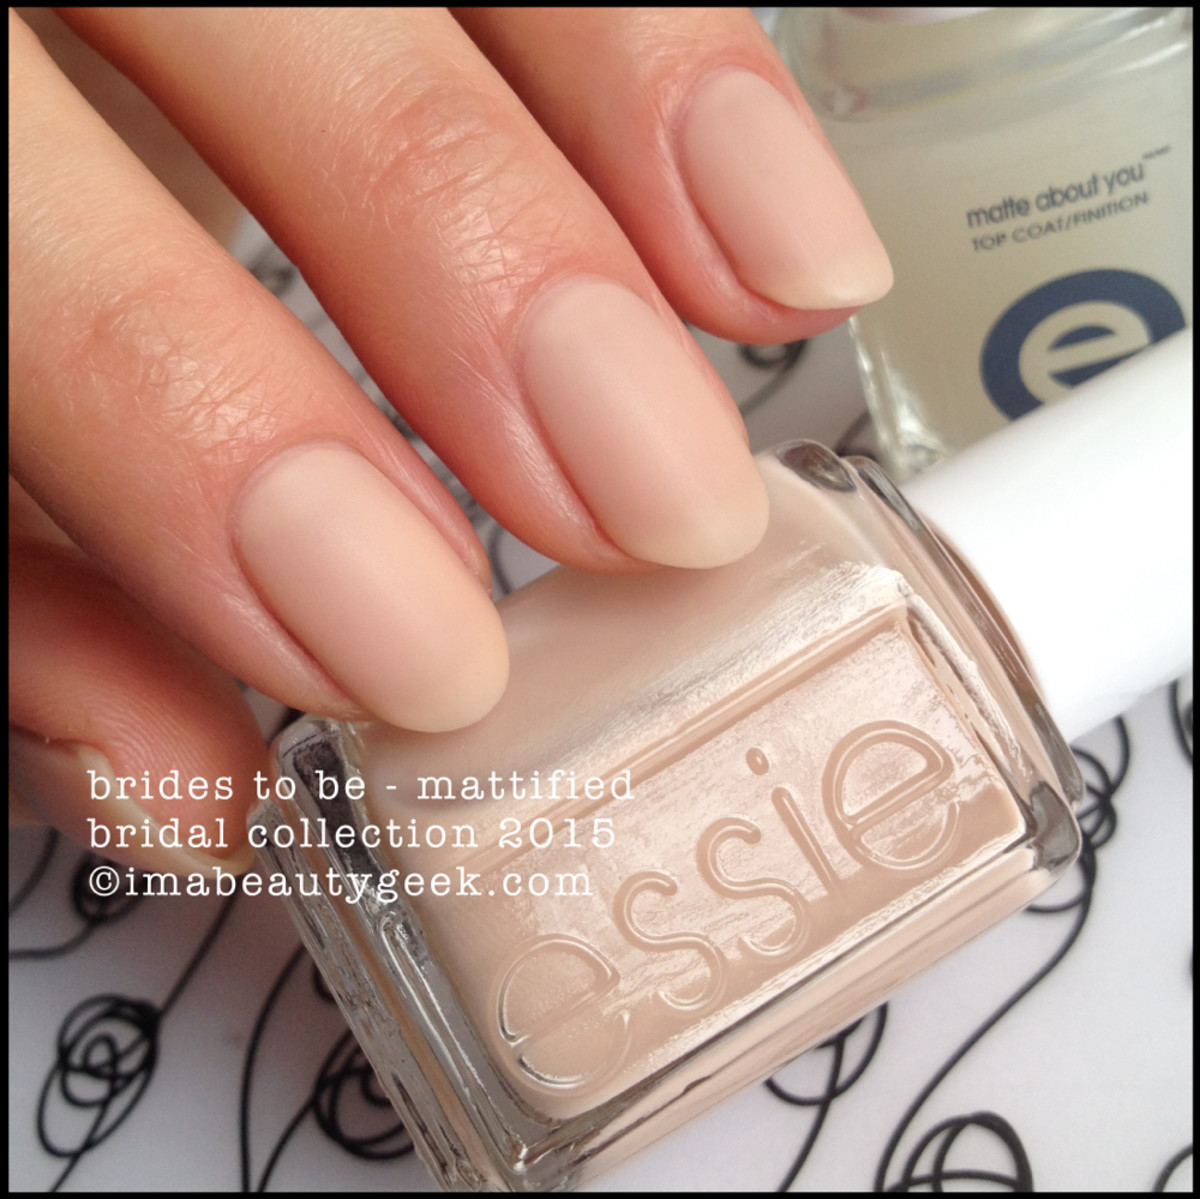 Essie Bridal 2015 Essie Brides to Be Mattified